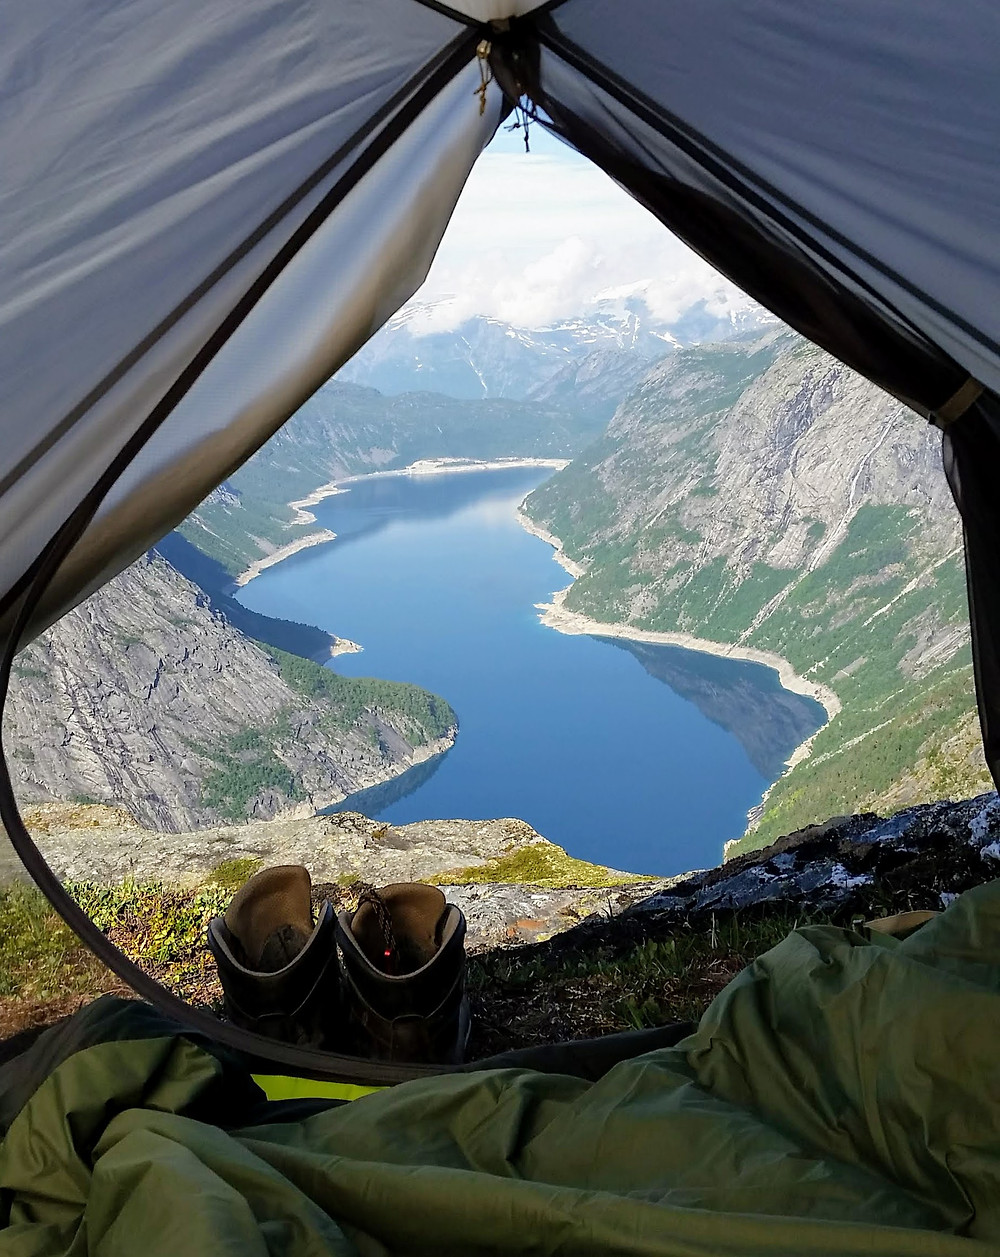 Camping is free when traveling to Norway